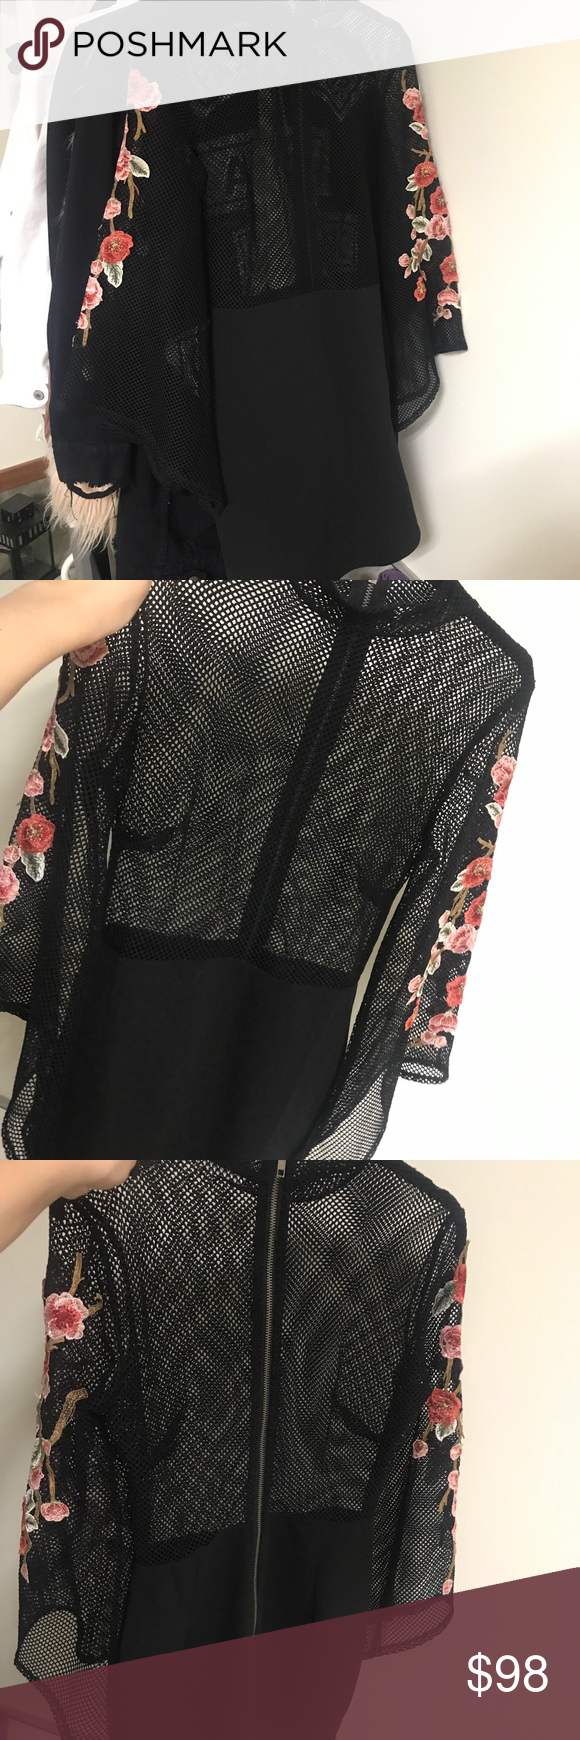 Lf mesh rose dress black mesh customer support and delivery